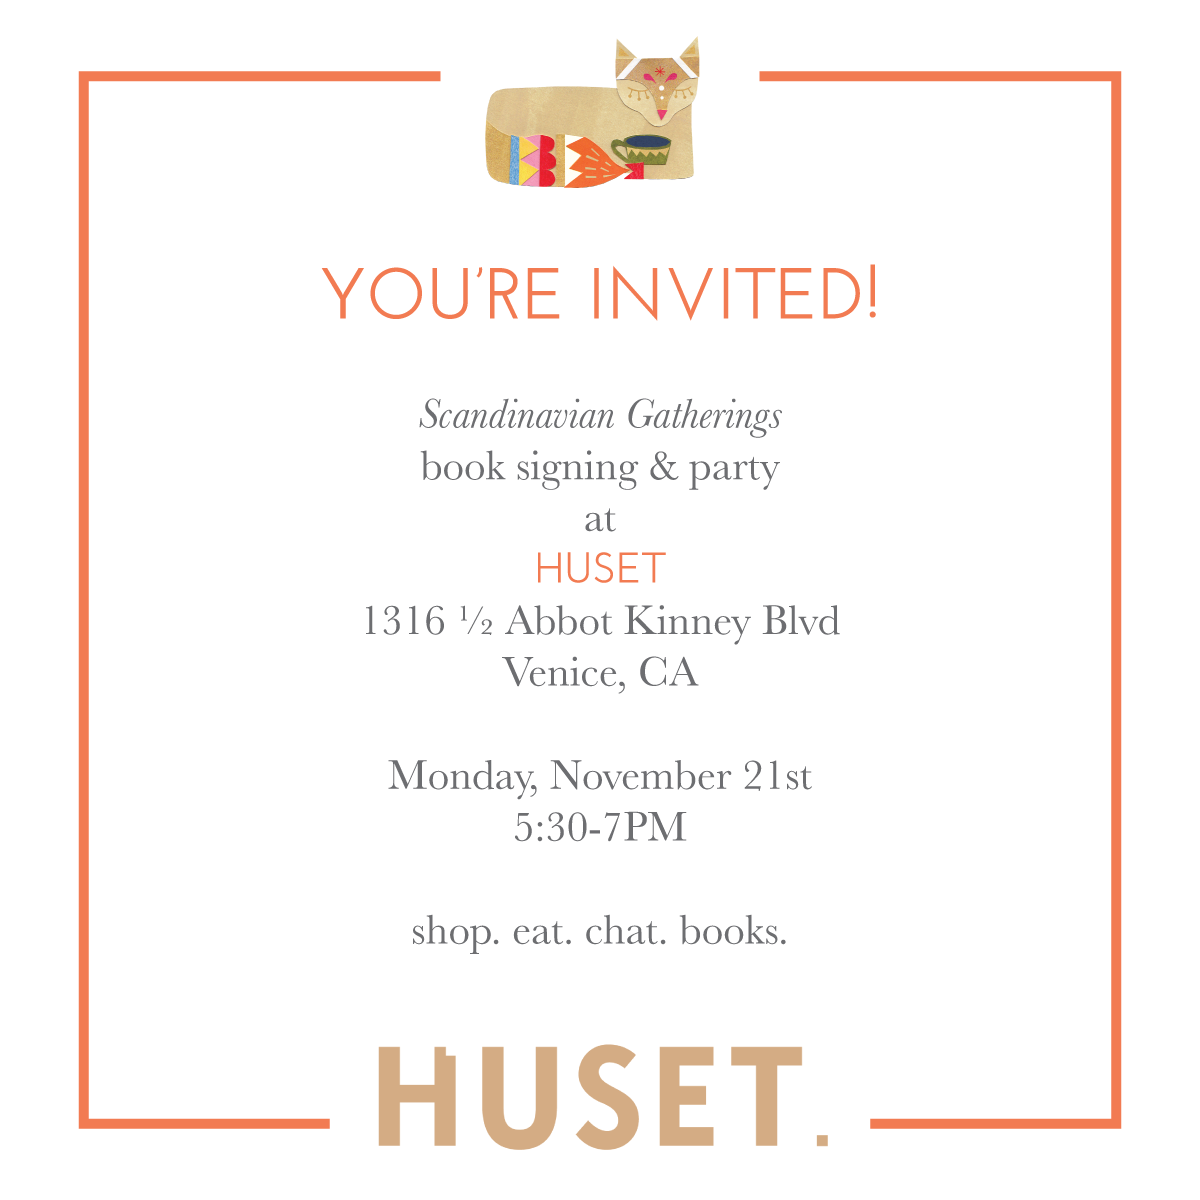 Scandinavian Gatherings book events: come shop, eat, and get signed copies of Scandinavian Gatherings at a book party on November 21st at HUSET in Venice, CA.